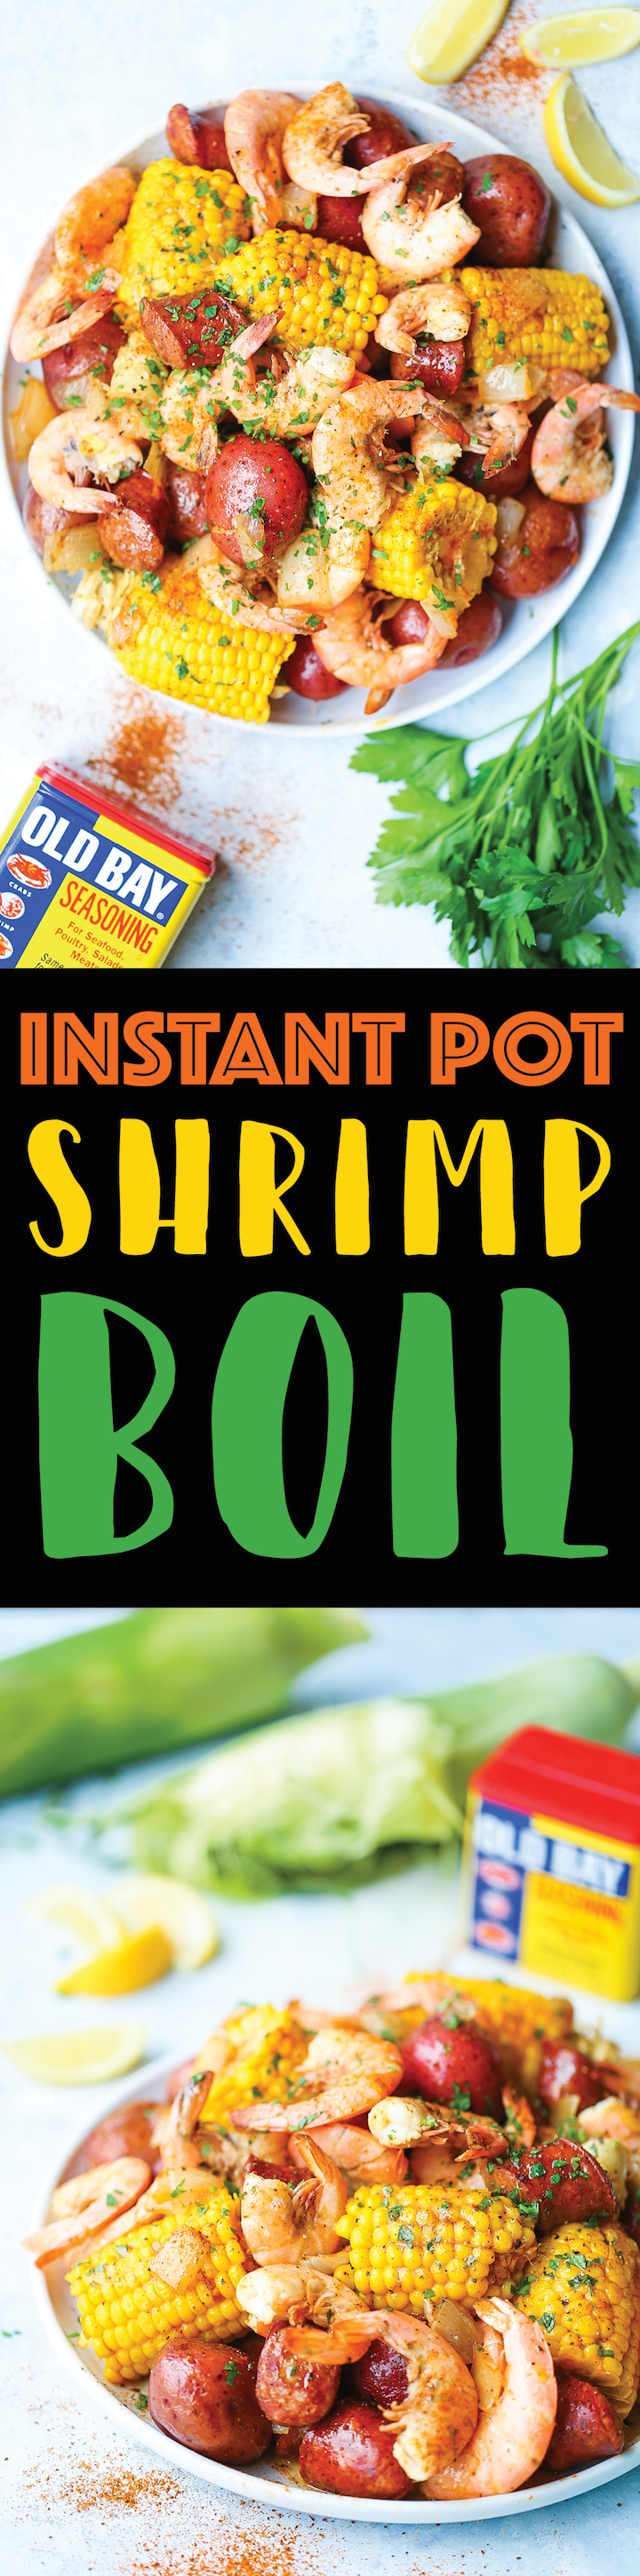 Instant Pot Shrimp Boil